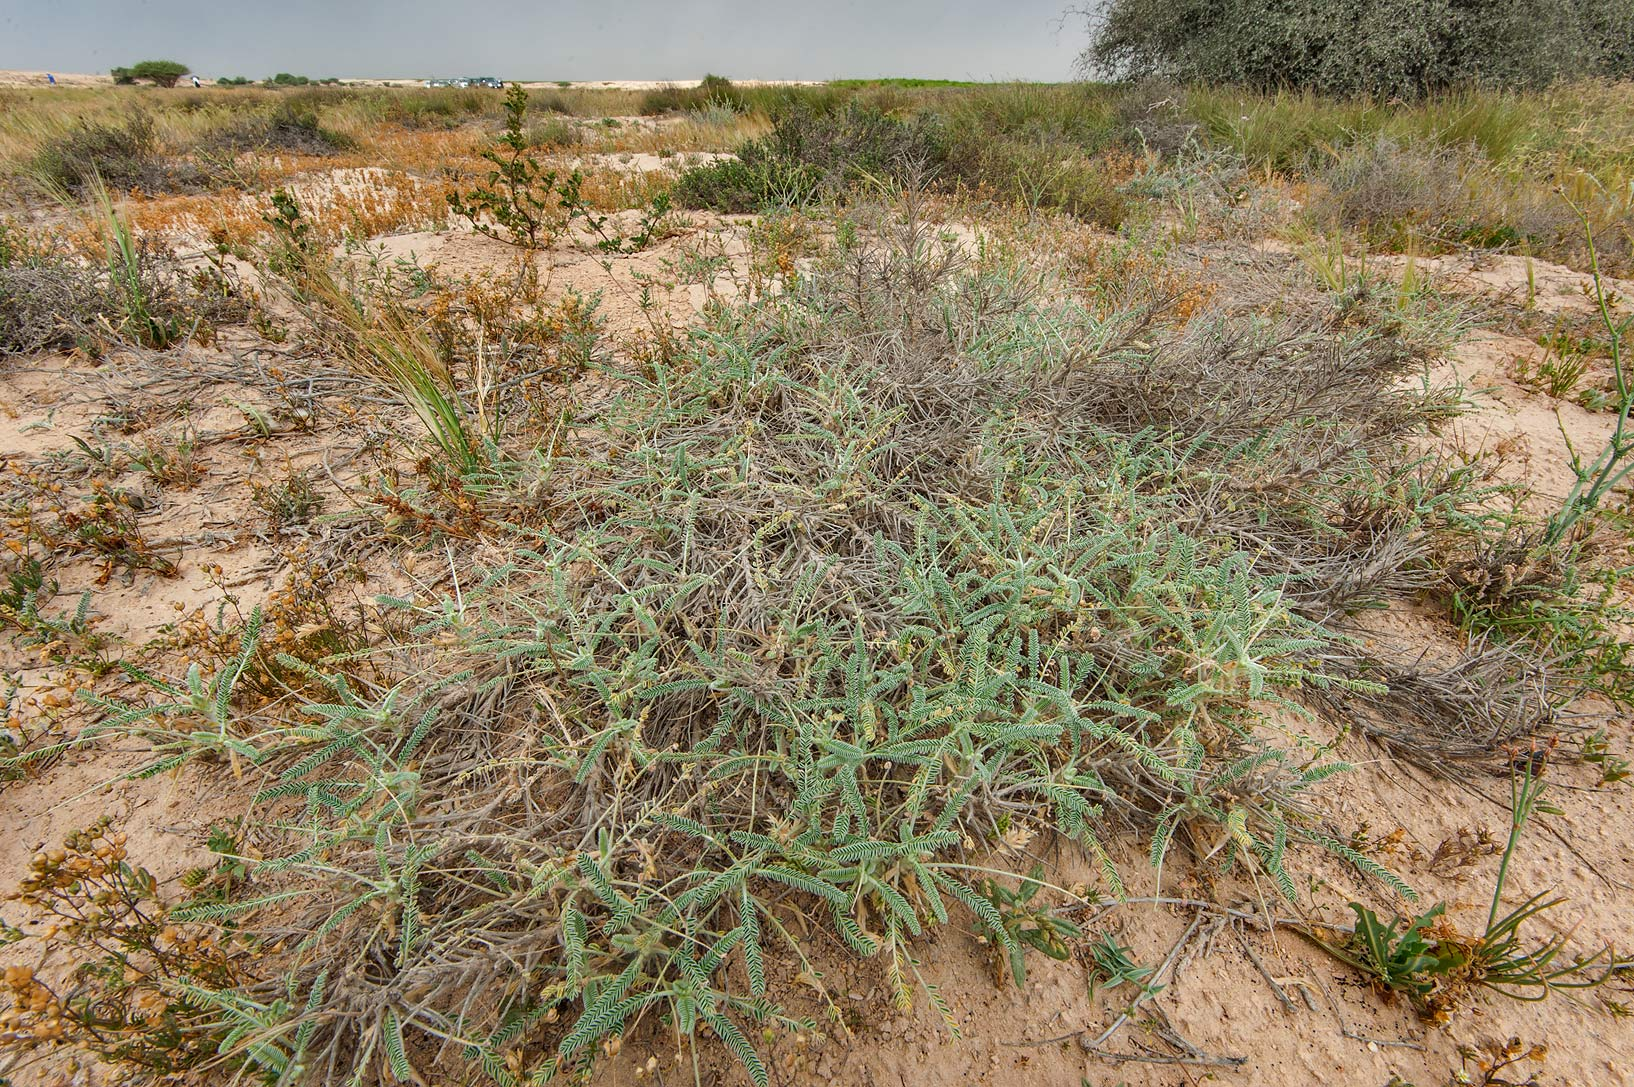 Half dry plant of Astragalus sieberi in a...Irkaya) Farms. South-western Qatar